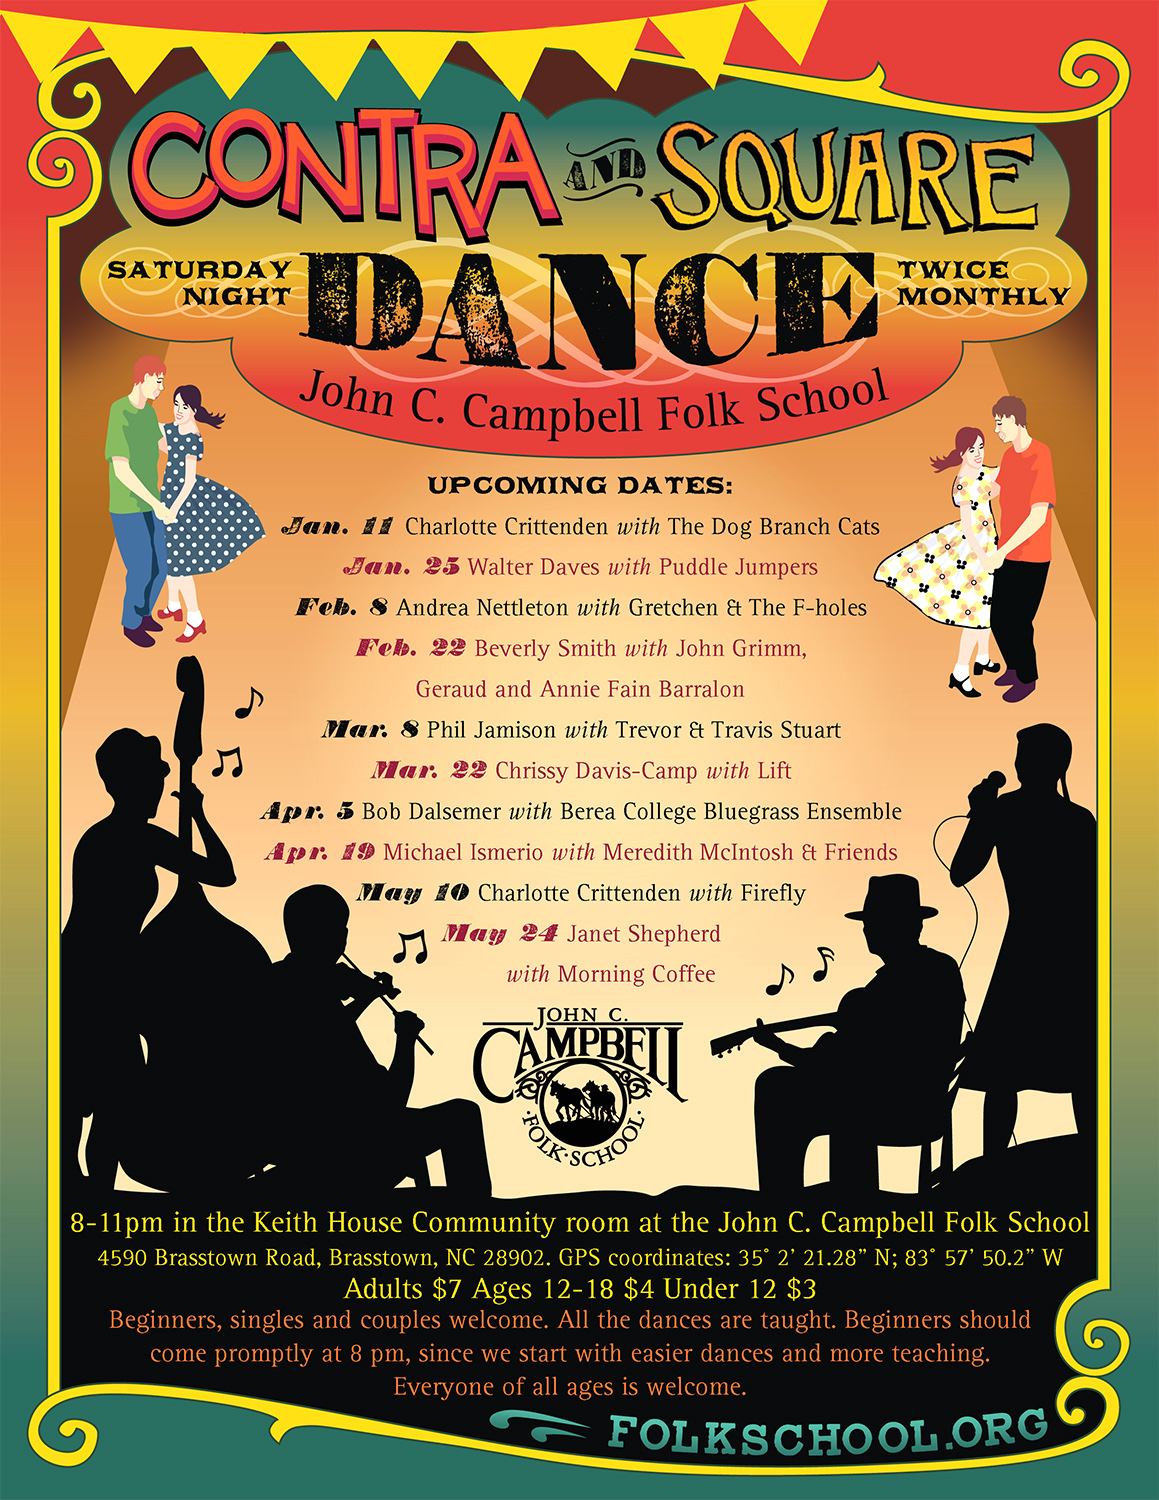 Saturday Night Community Dance Calendar